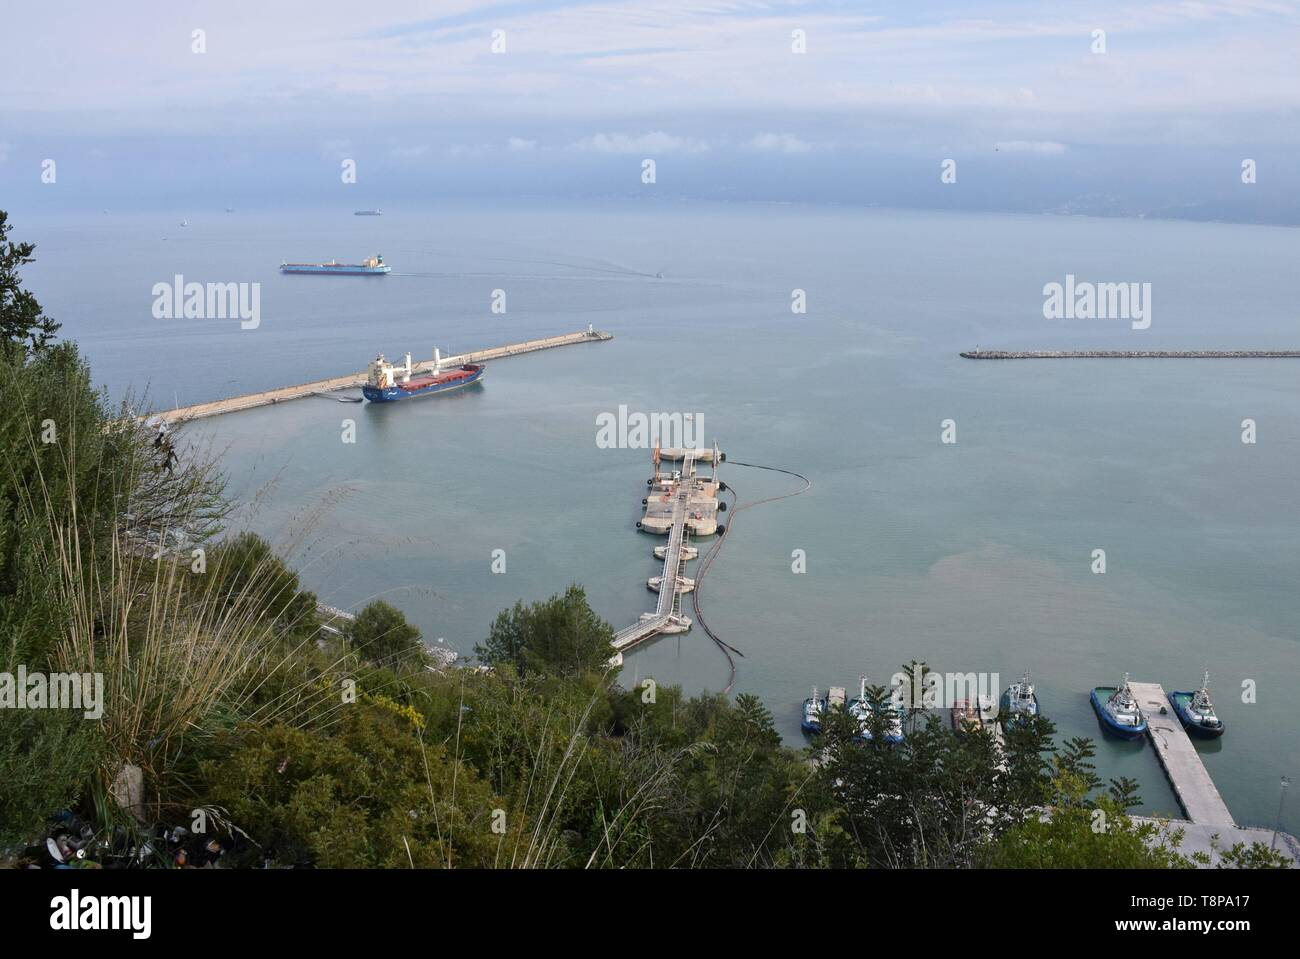 Ships on 02.04.2019 in the port of Bejaia - Algeria. | usage worldwide Stock Photo